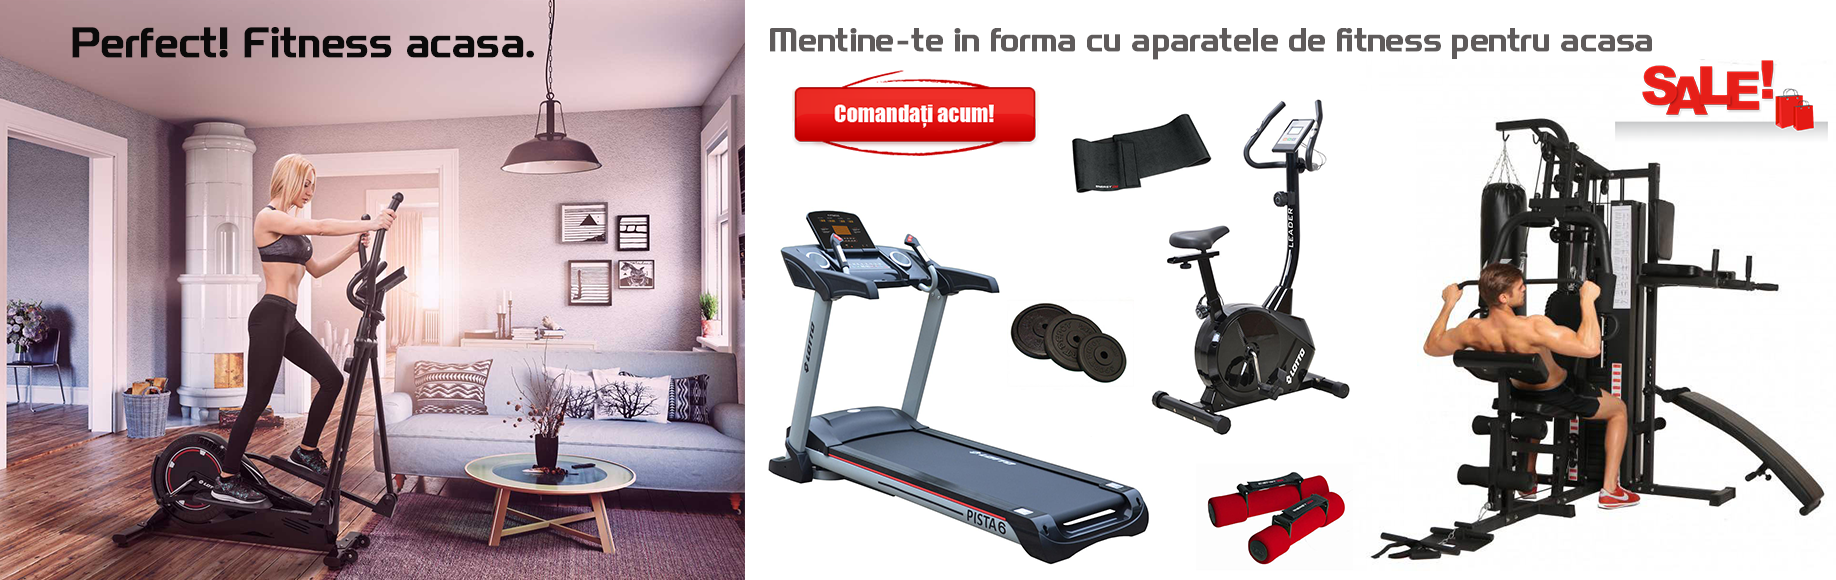 Promotie aparate fitness